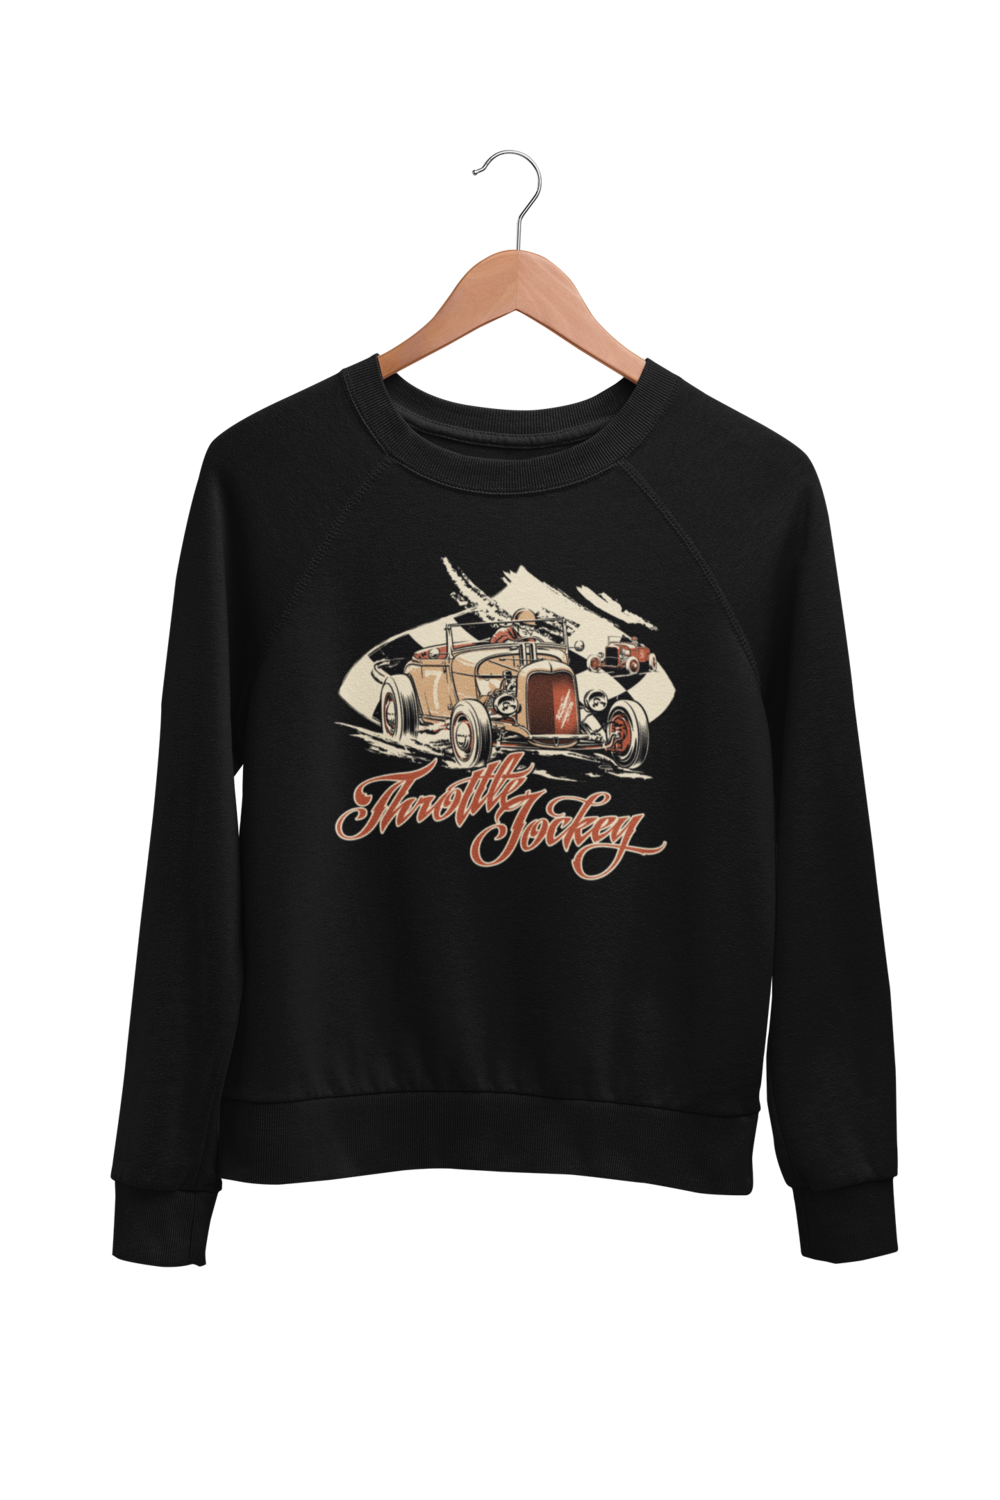 "THROTTLE JOCKEY ""roadster race"" SWEATSHIRT UNISEX by BY Ger ""Dutch Courage"" Peters artwork"